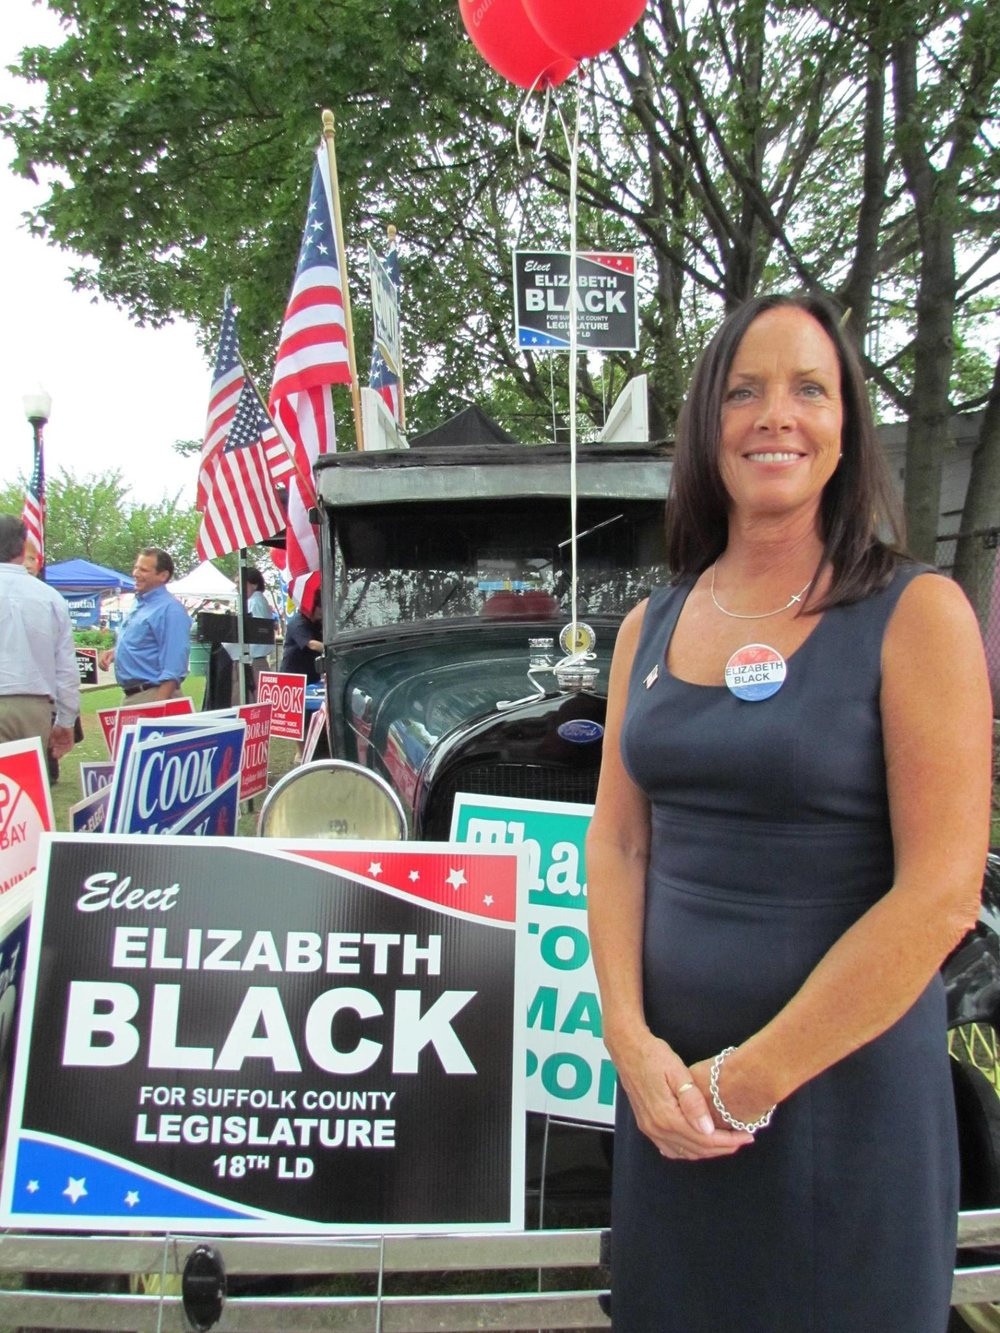 Elizabeth Black, who died in October 2016, is remembered as one who got deeply involved with her church, schools community organizations.